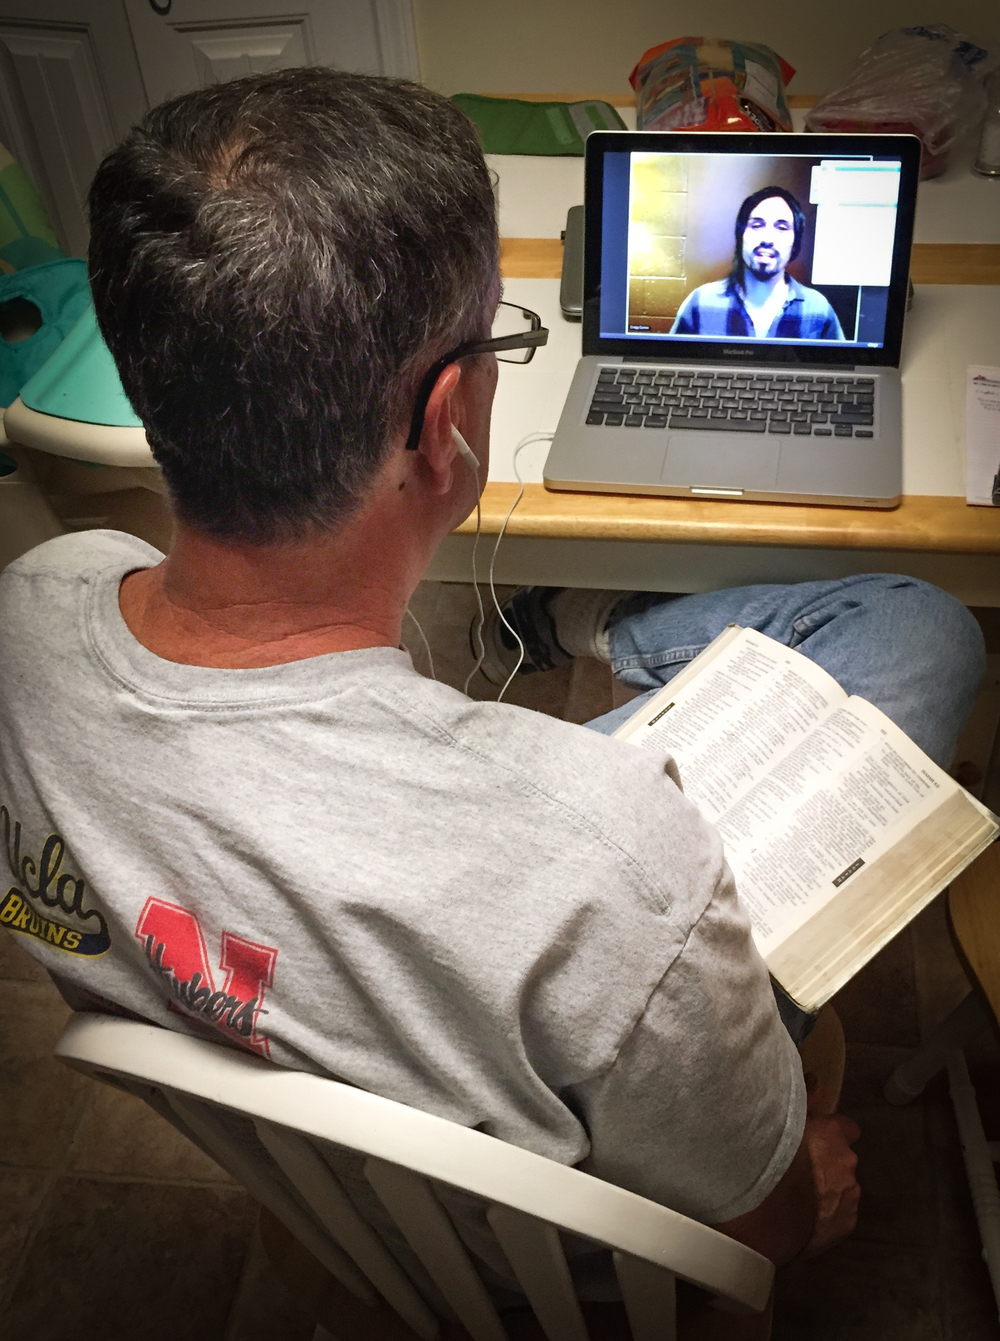 Bob Cates, father of G.O.D. member Stephanie Bartlett, has enjoyed deeper theological conversations with his daughter as a result of our Institute Online program, which he tunes into from California.